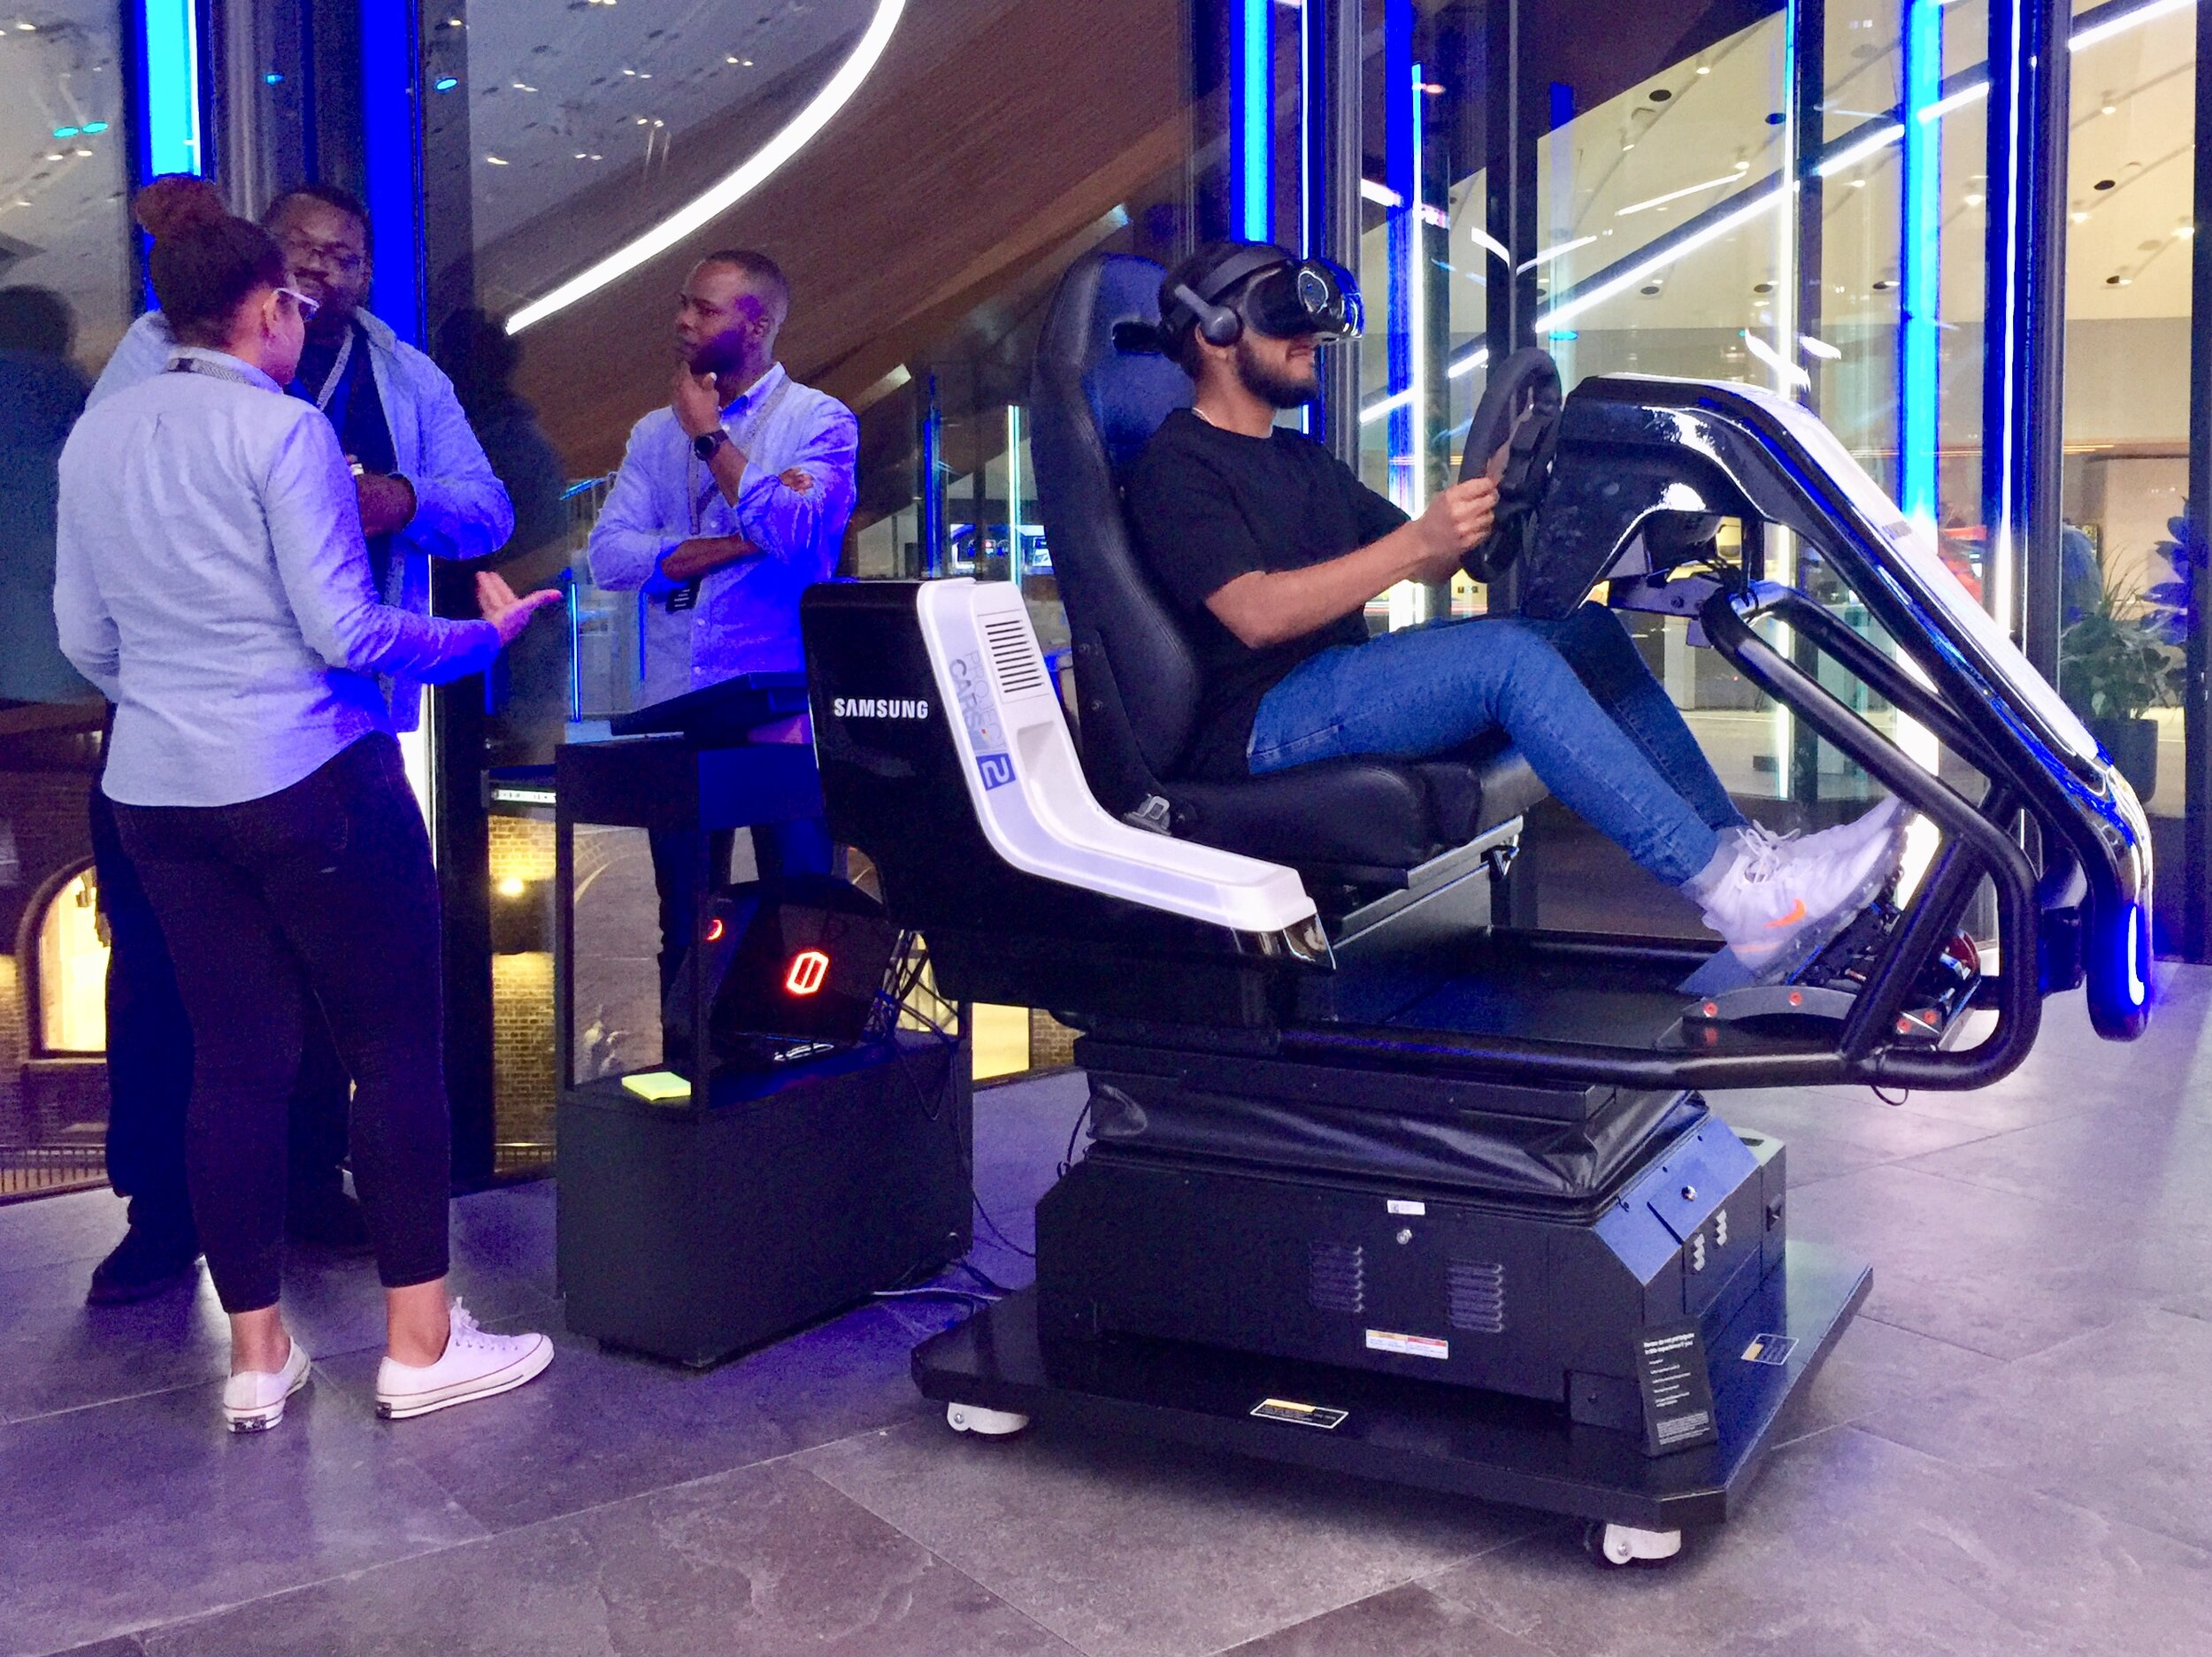 Update: - Having visited the store, the most interesting talking point was the Samsung Project Cars 2. Two hi-tech experiential driving seats that move, tilt and vibrate in reaction to a racing game that plays through your VR headset. This technology is the closest you can come to driving without getting in a car - casting potential for future collaboration between Samsung and Universal to promote our favourite vehicular action movies?